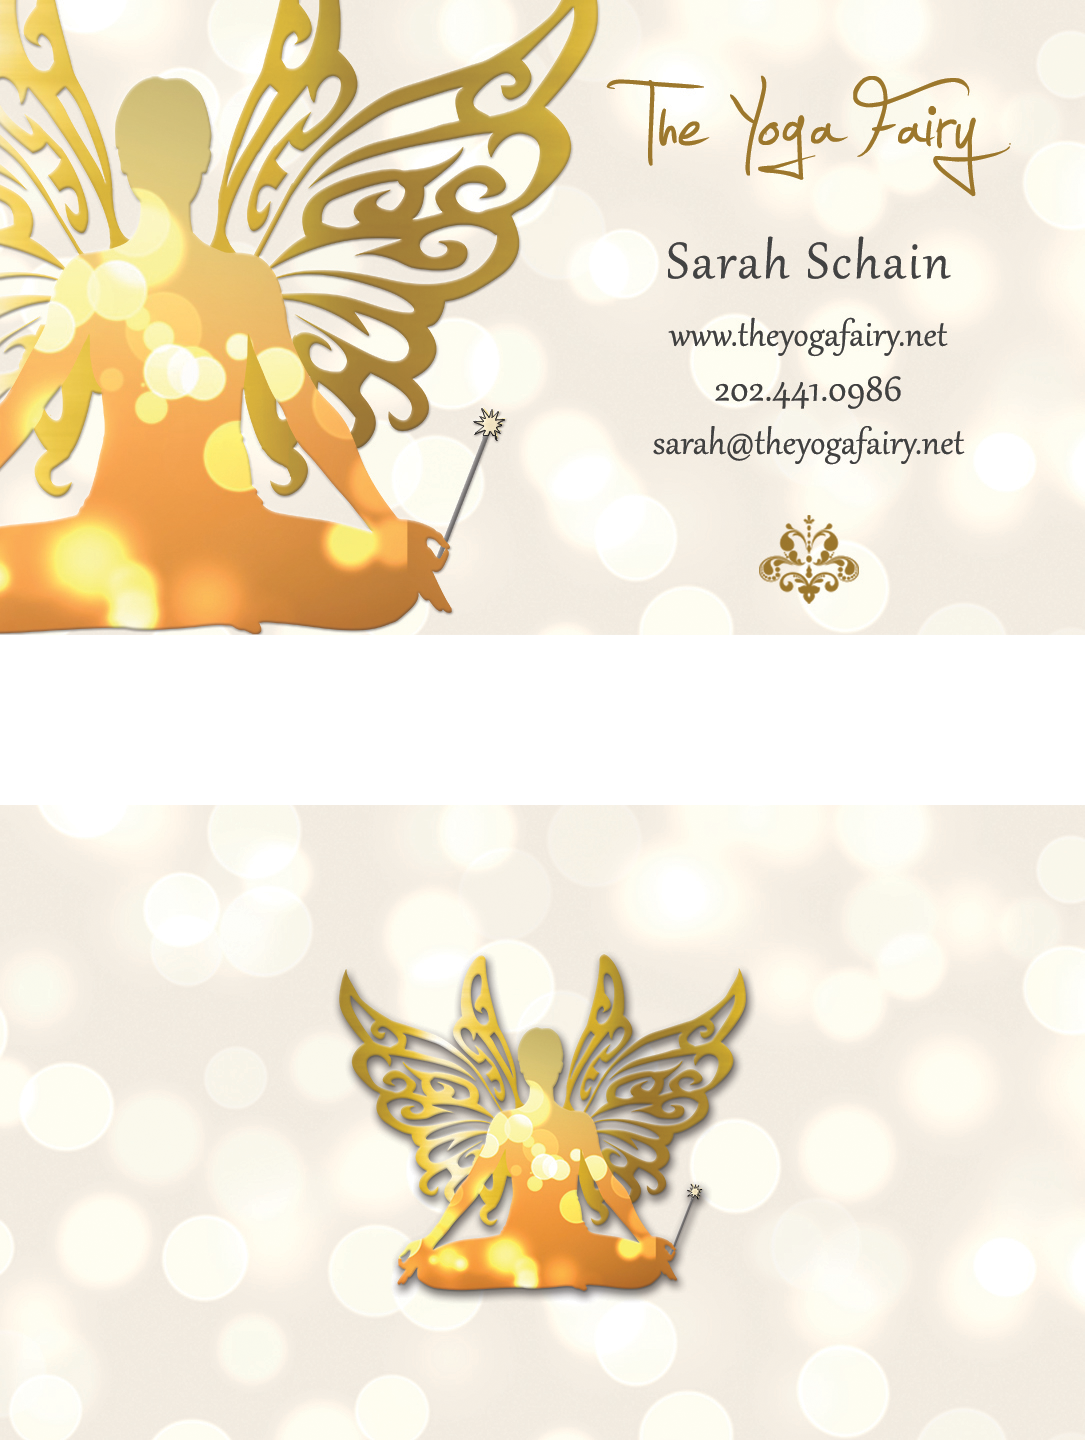 Website Design,Logo Design,Yoga,the yoga fairy